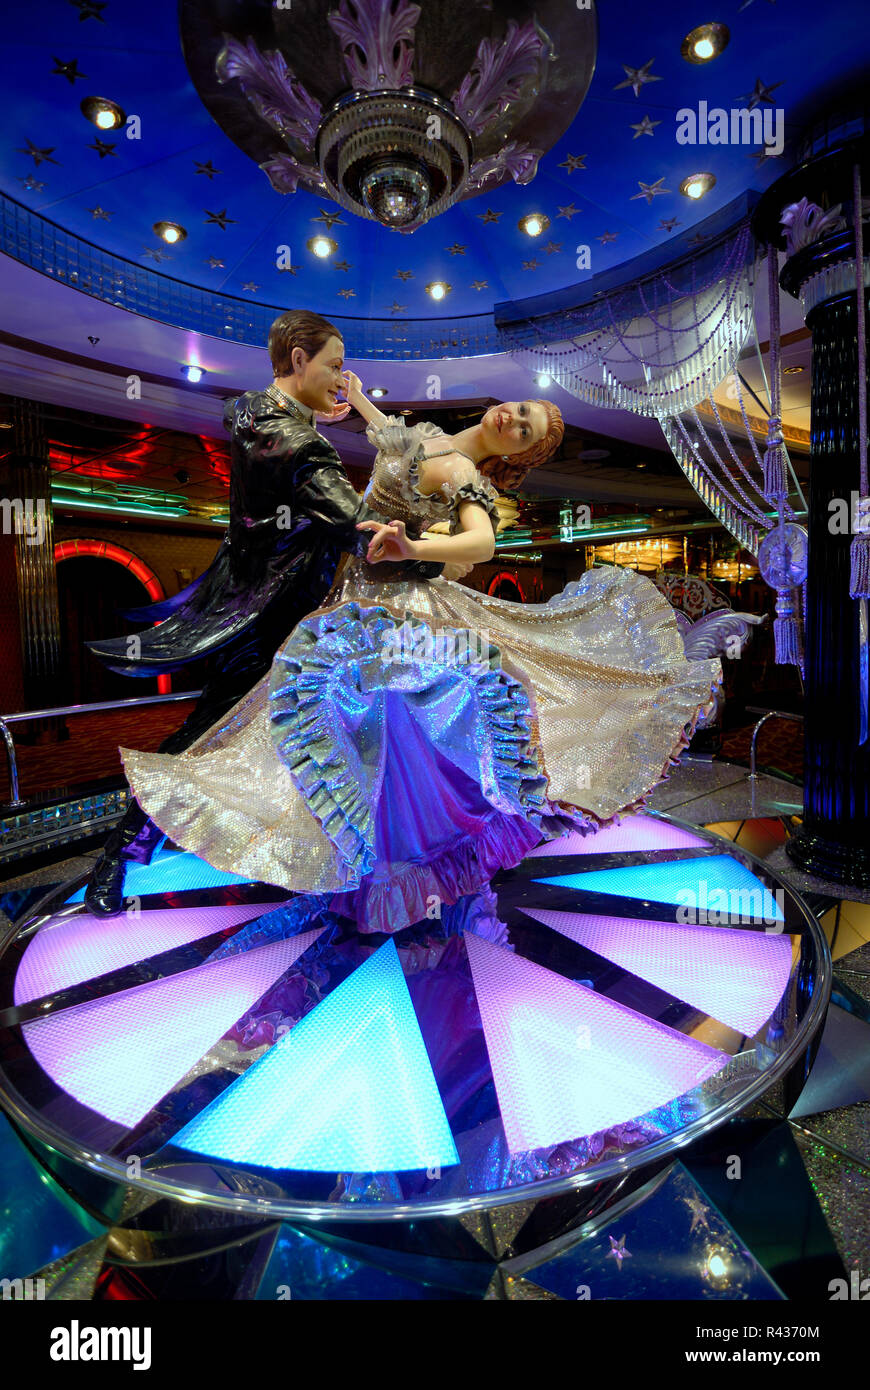 This statue of two ballroom dancers is located in the casino on the Royal Caribbean cruise ship Adventure of the Seas. - Stock Image